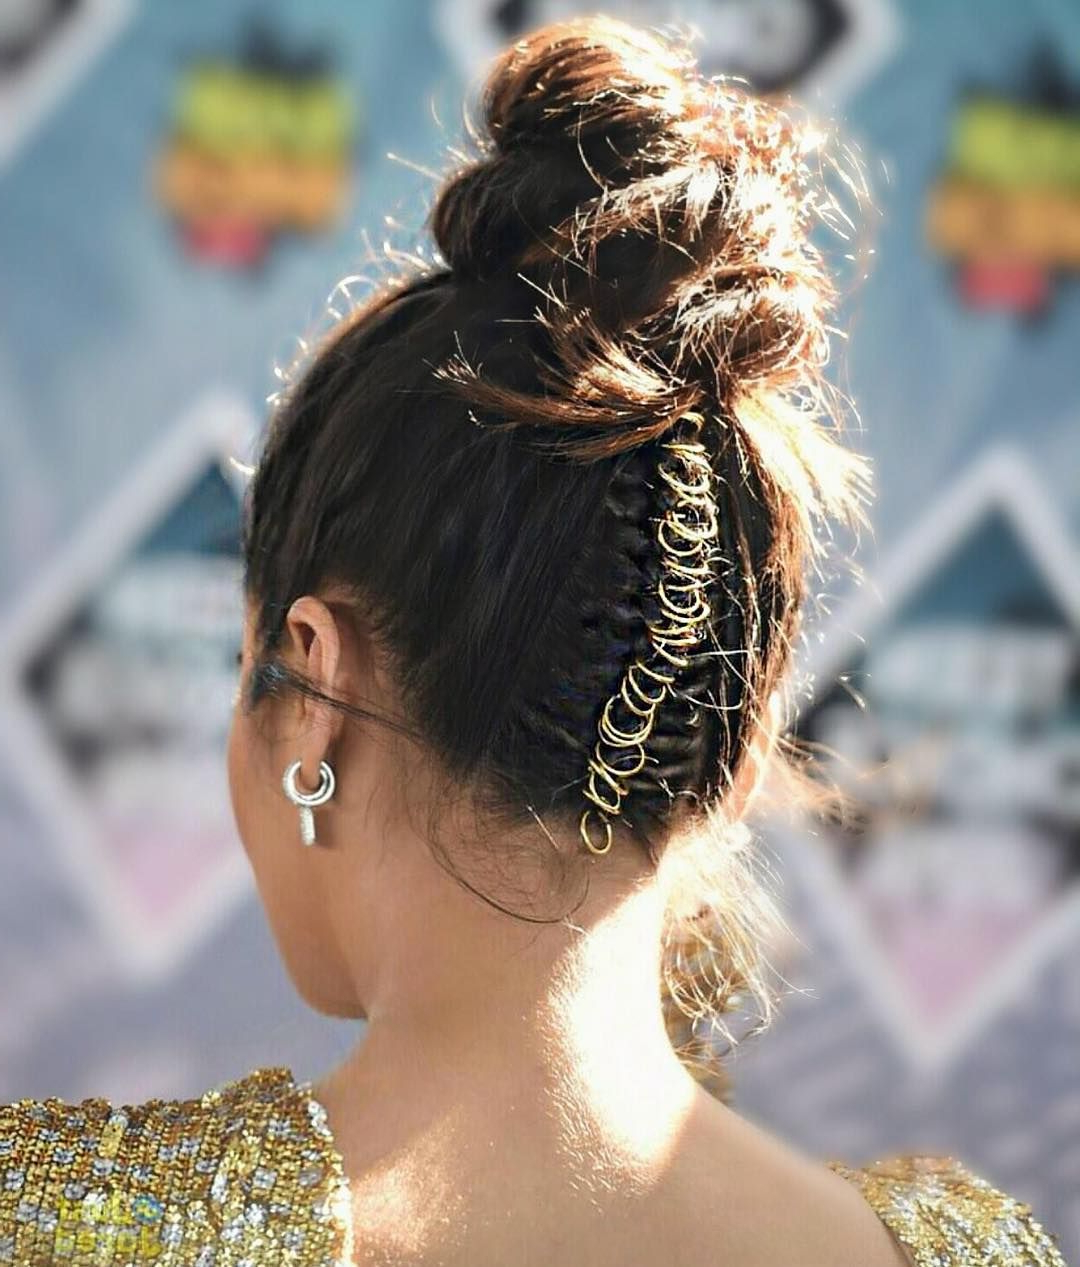 Hair With Regard To Famous Hoop Embellished Braids Hairstyles (View 11 of 20)